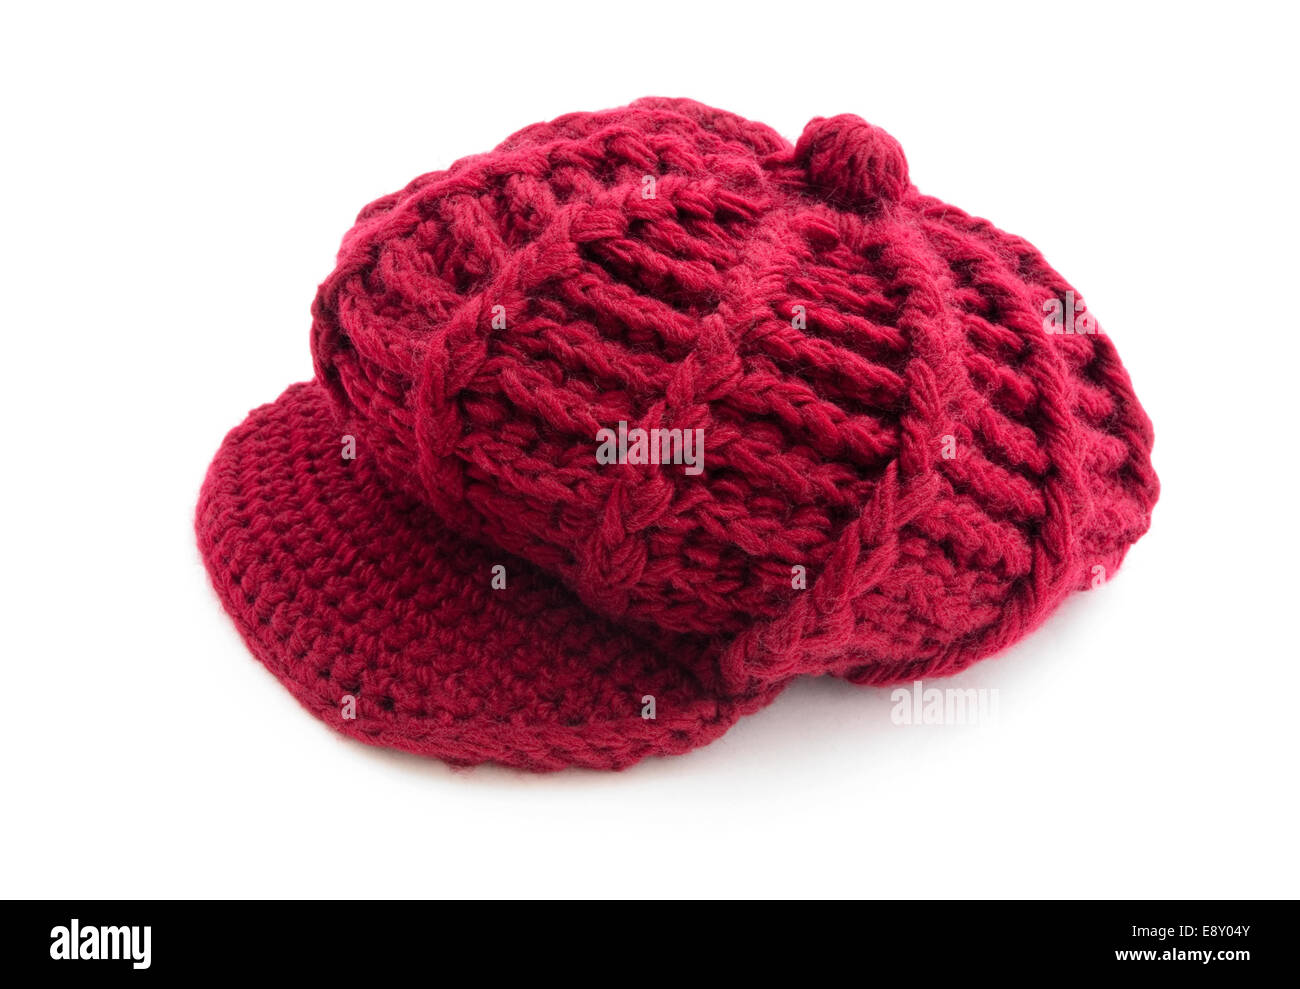 Red wool cap - Stock Image